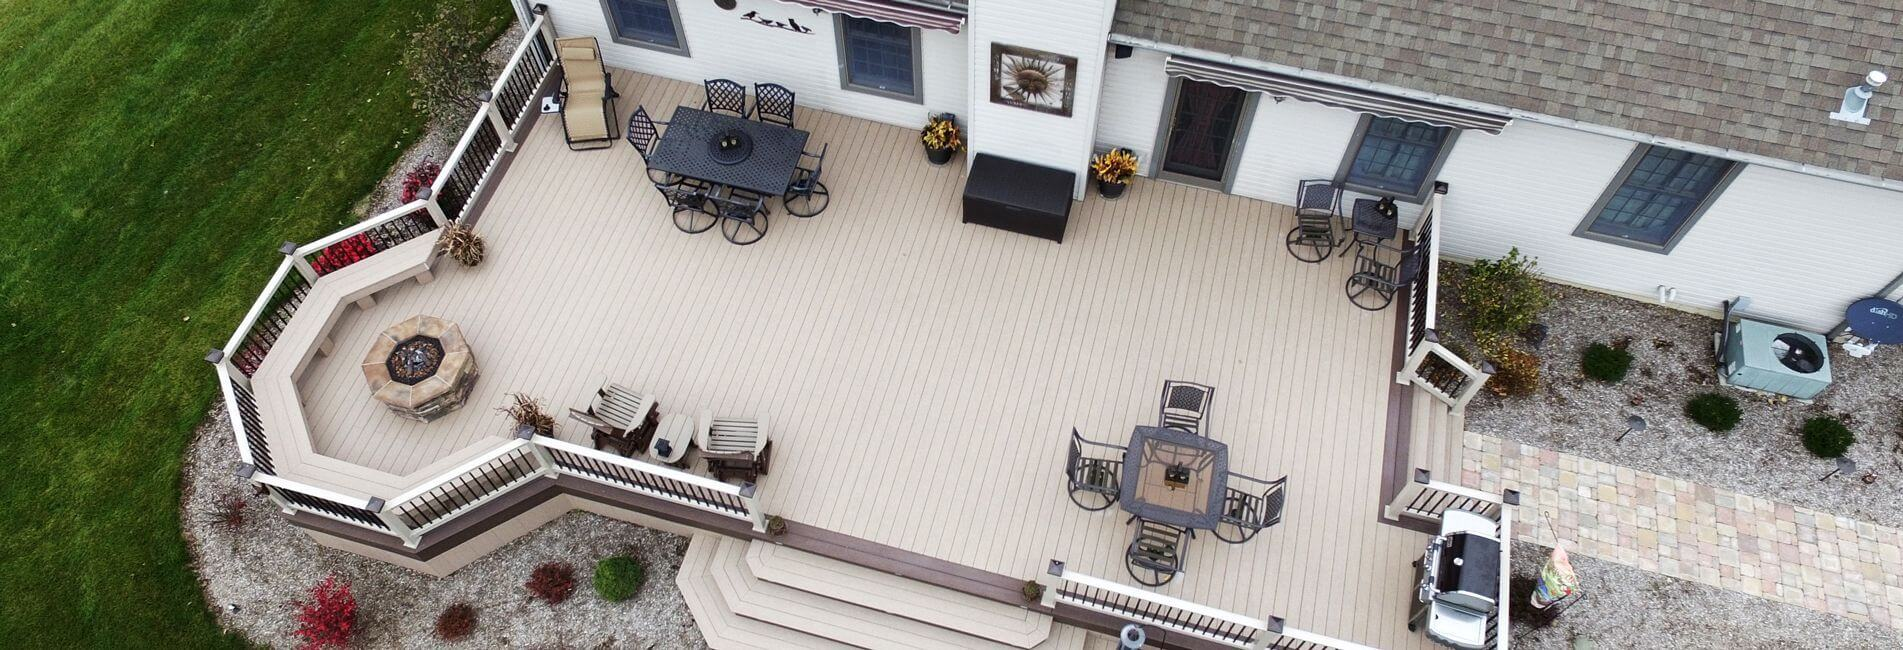 Outdoor Vinyl Decks & Patios by Mount Hope Fence of Ohio